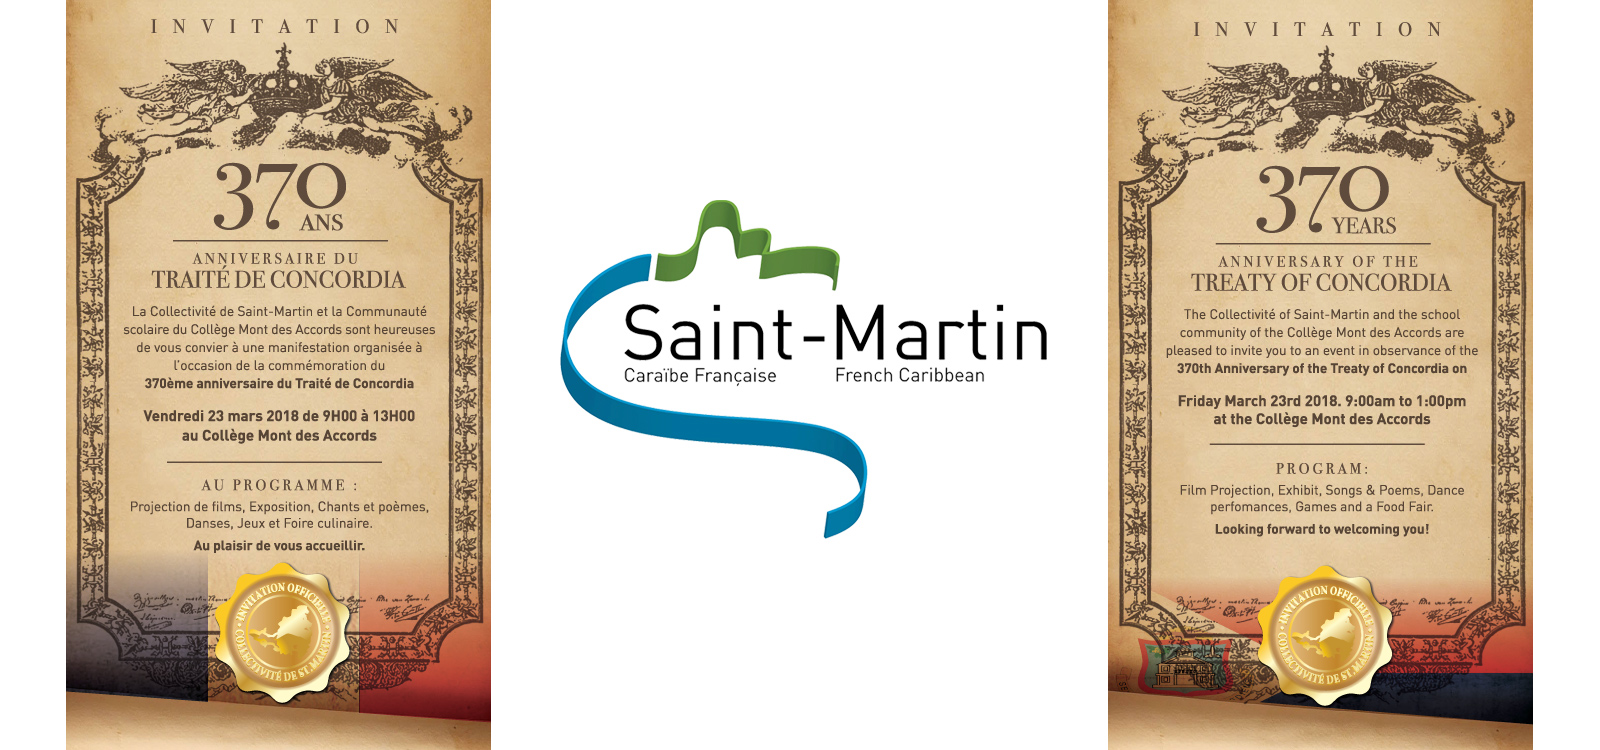 39b7afb018a The Saint-Martin Youth Territorial Council and the Collège Mont des  Accords school community invite the public to the celebration of the 370e  anniversary ...